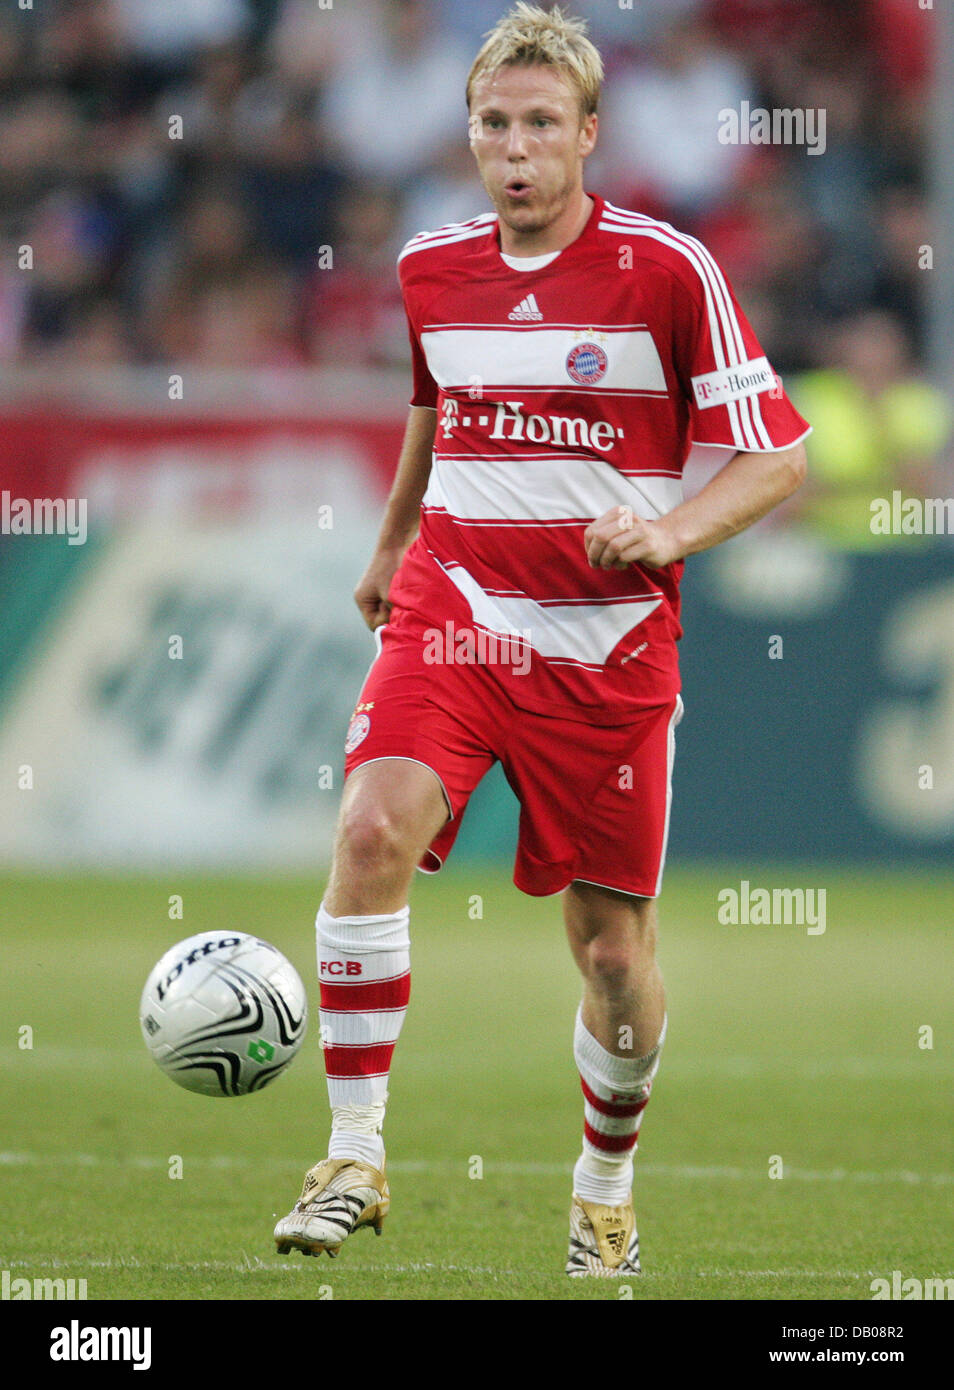 Christian Lell of Bayern Munich pictured during the test cap Borussia Moenchengladbach v FC Bayern Munich at the Stock Photo